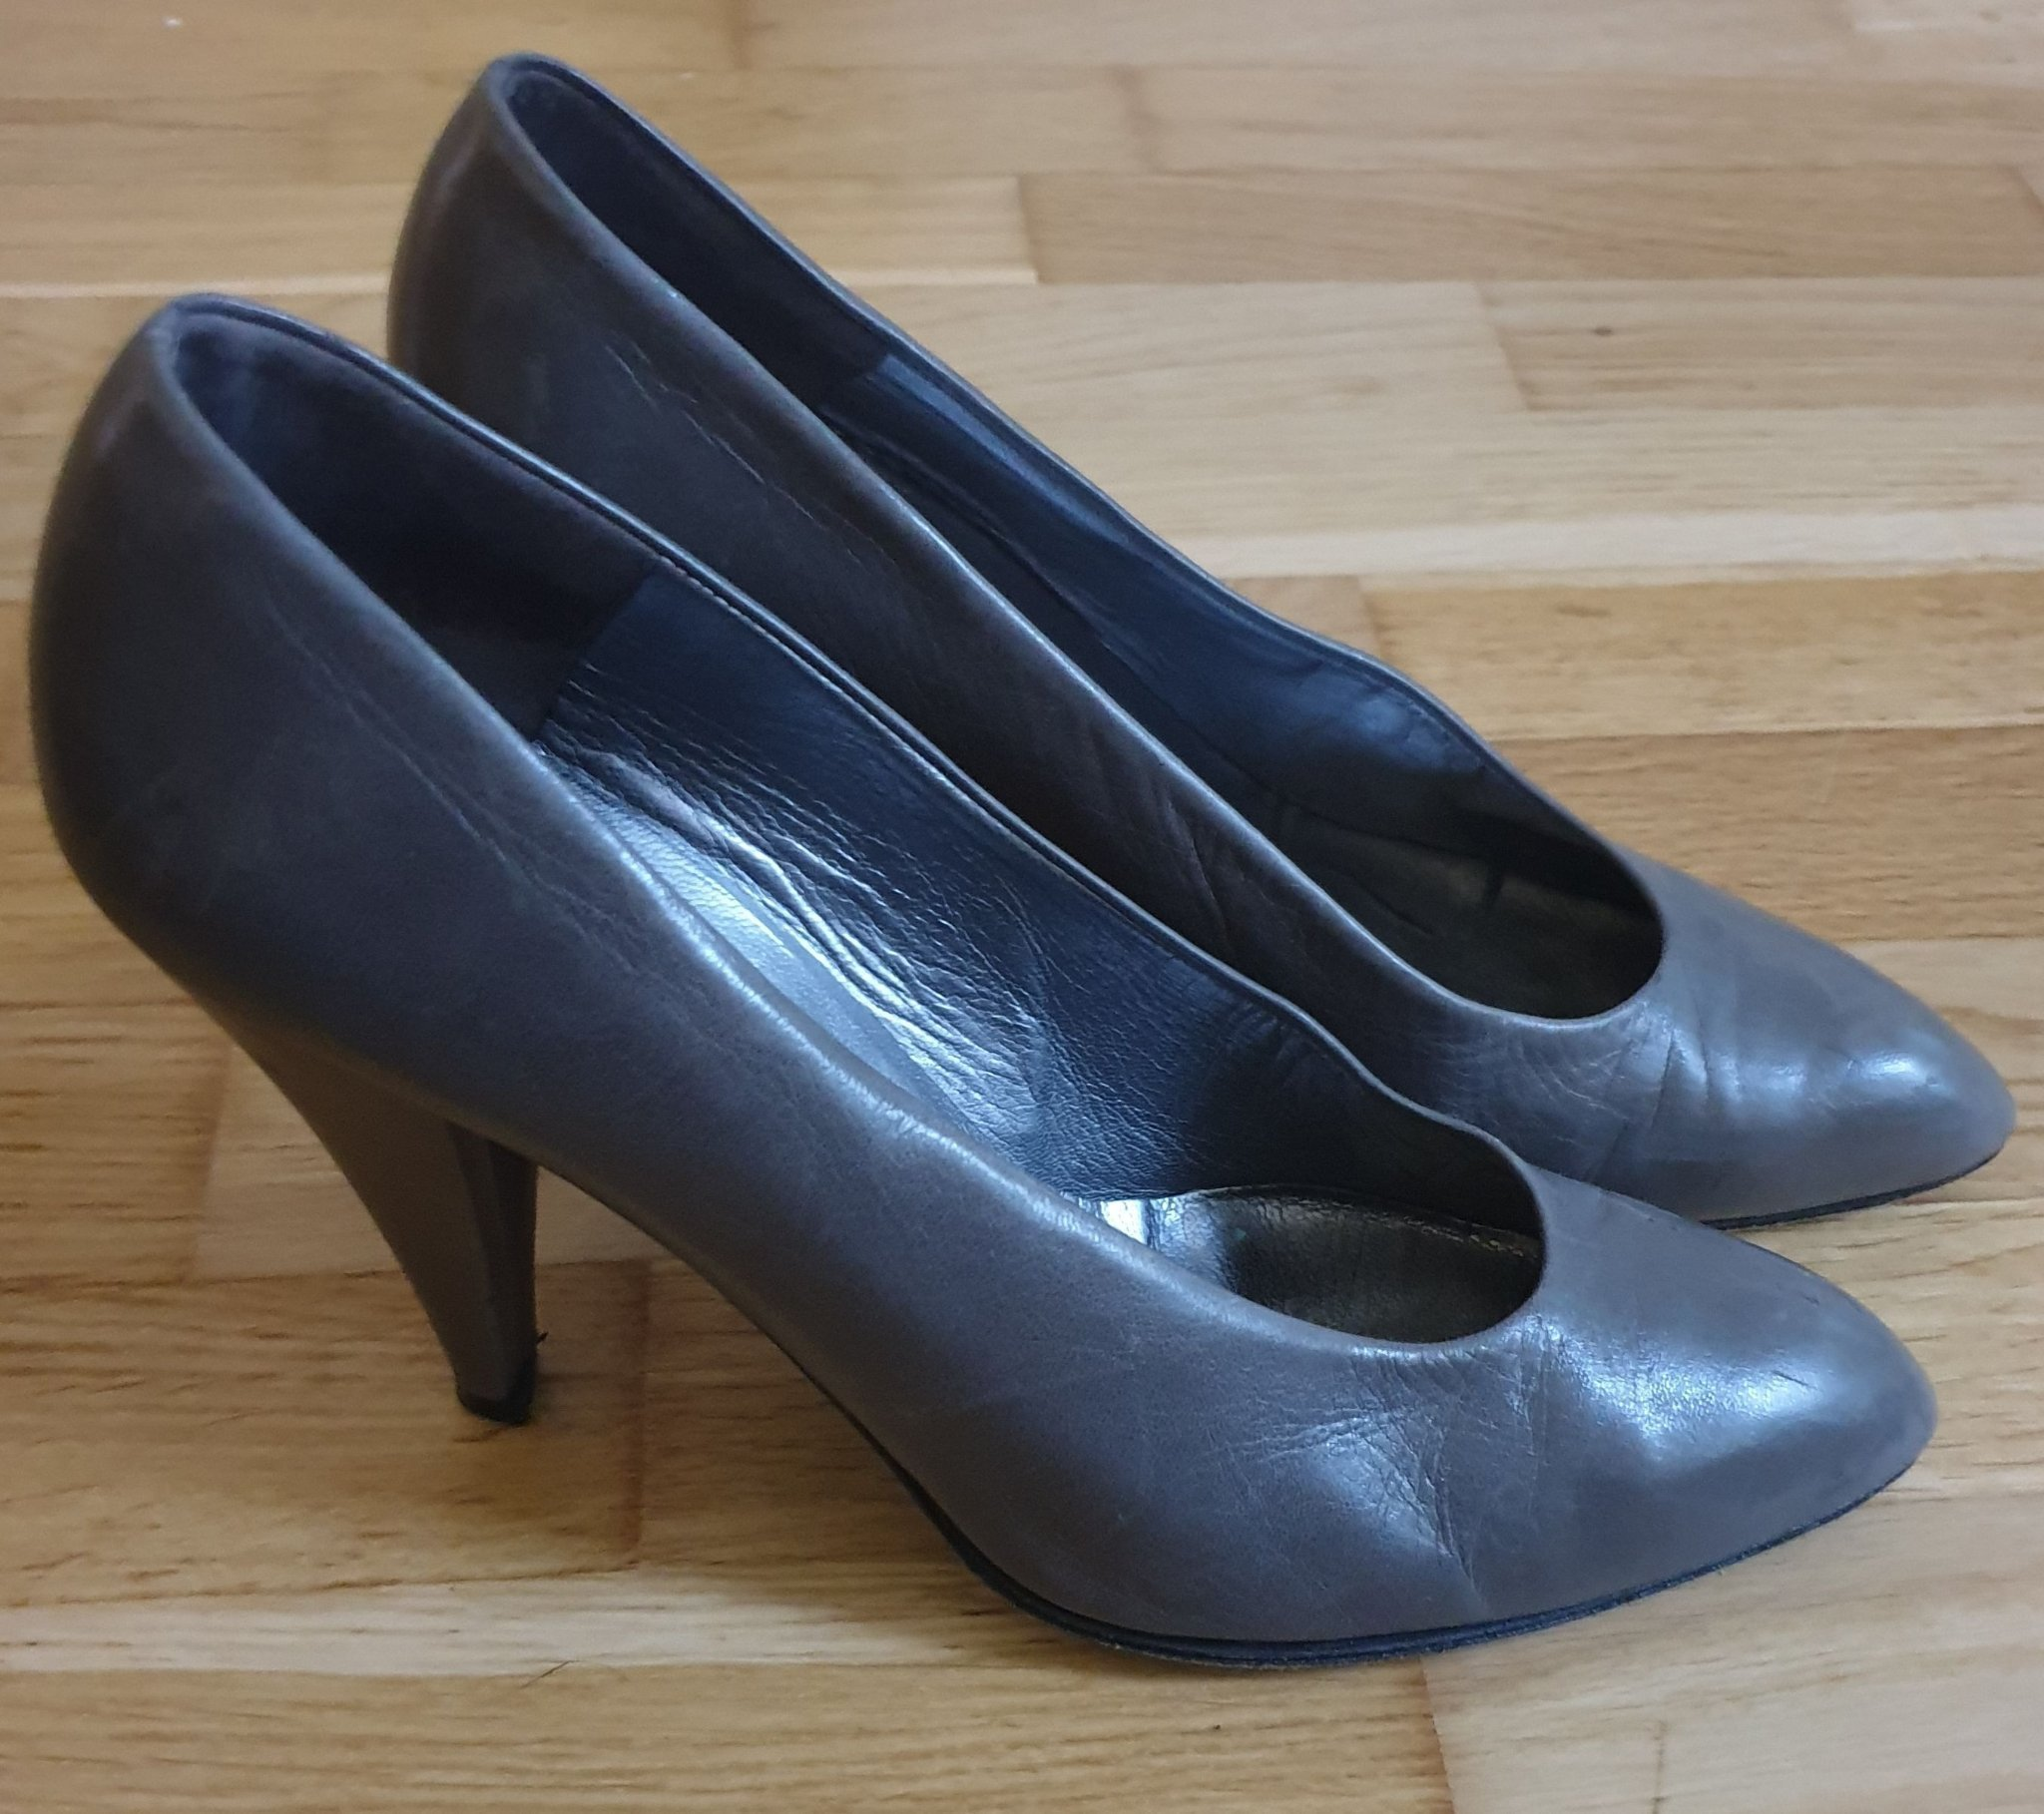 Design Charles Jourdan vintage pumps.st. 38 (4 1/2)